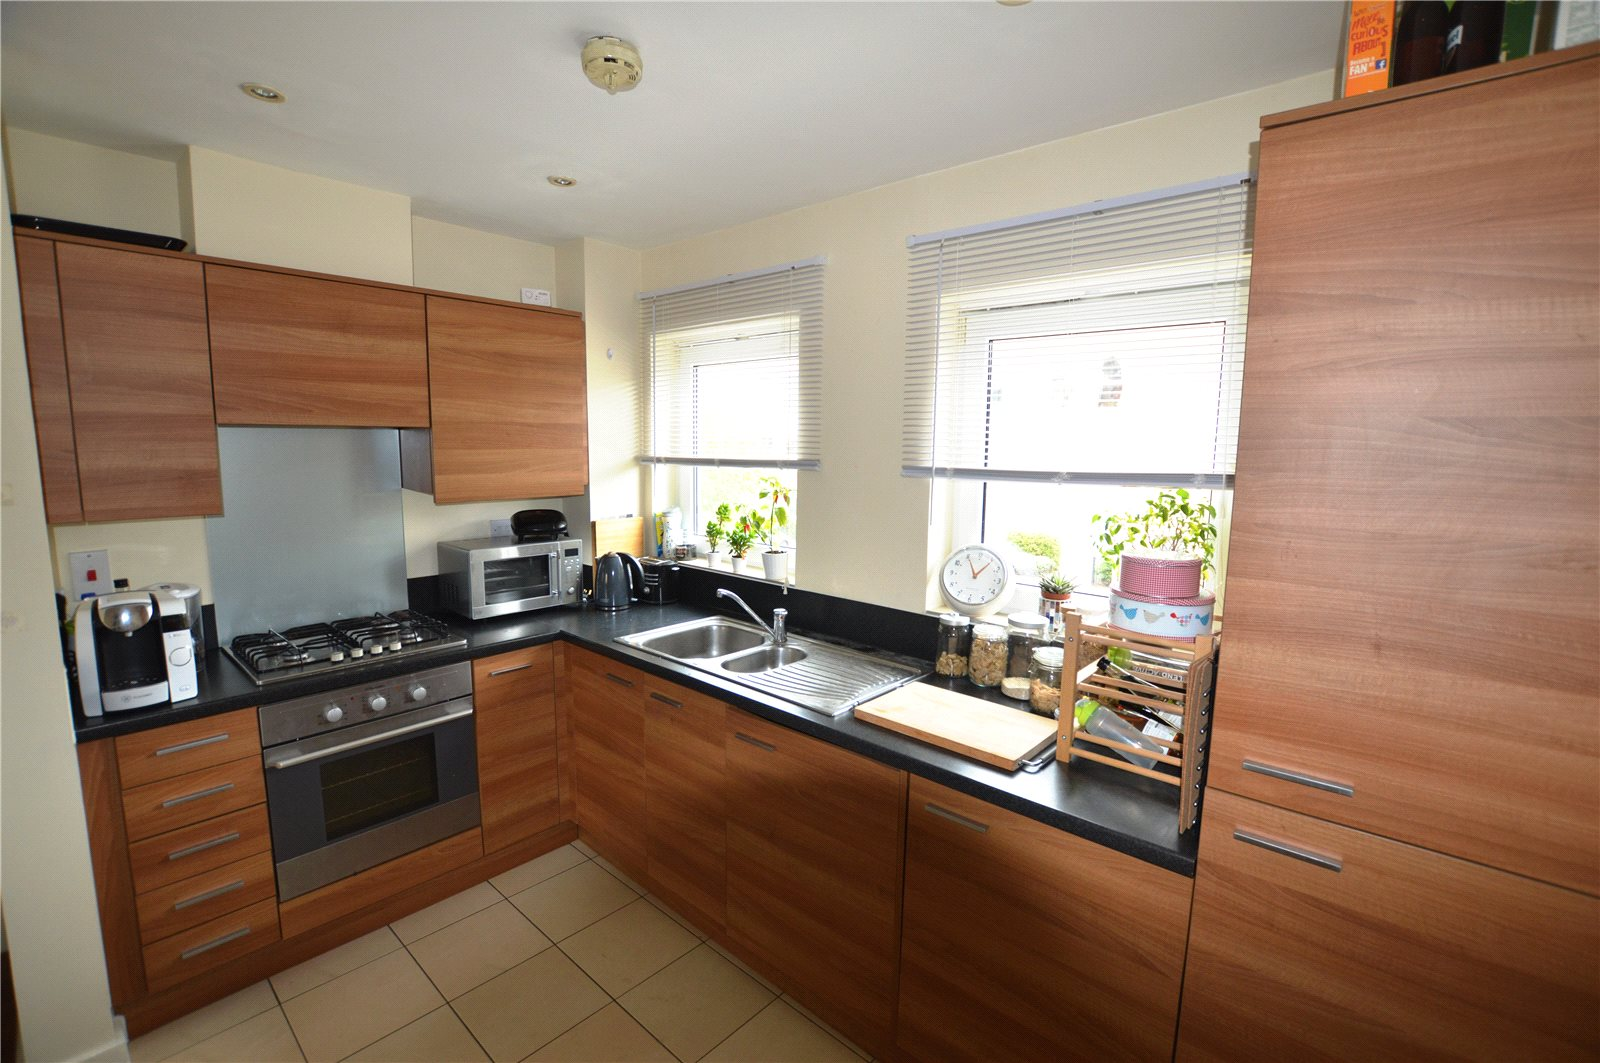 2 Bedrooms Apartment Flat for sale in Tean House, Havergate Way, Reading, Berkshire, RG2